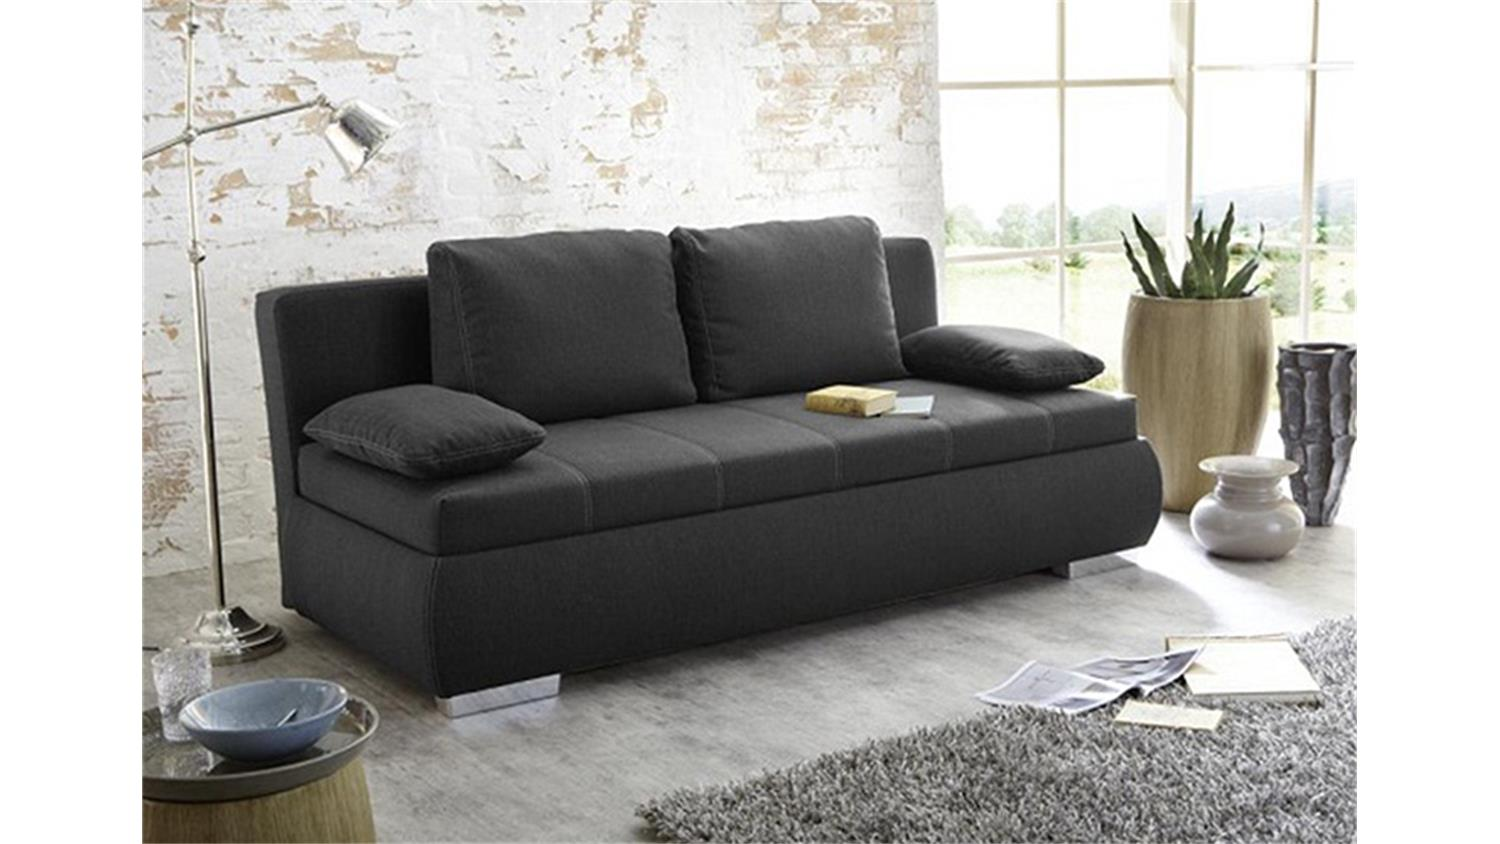 boxspring schlafsofa m belideen. Black Bedroom Furniture Sets. Home Design Ideas